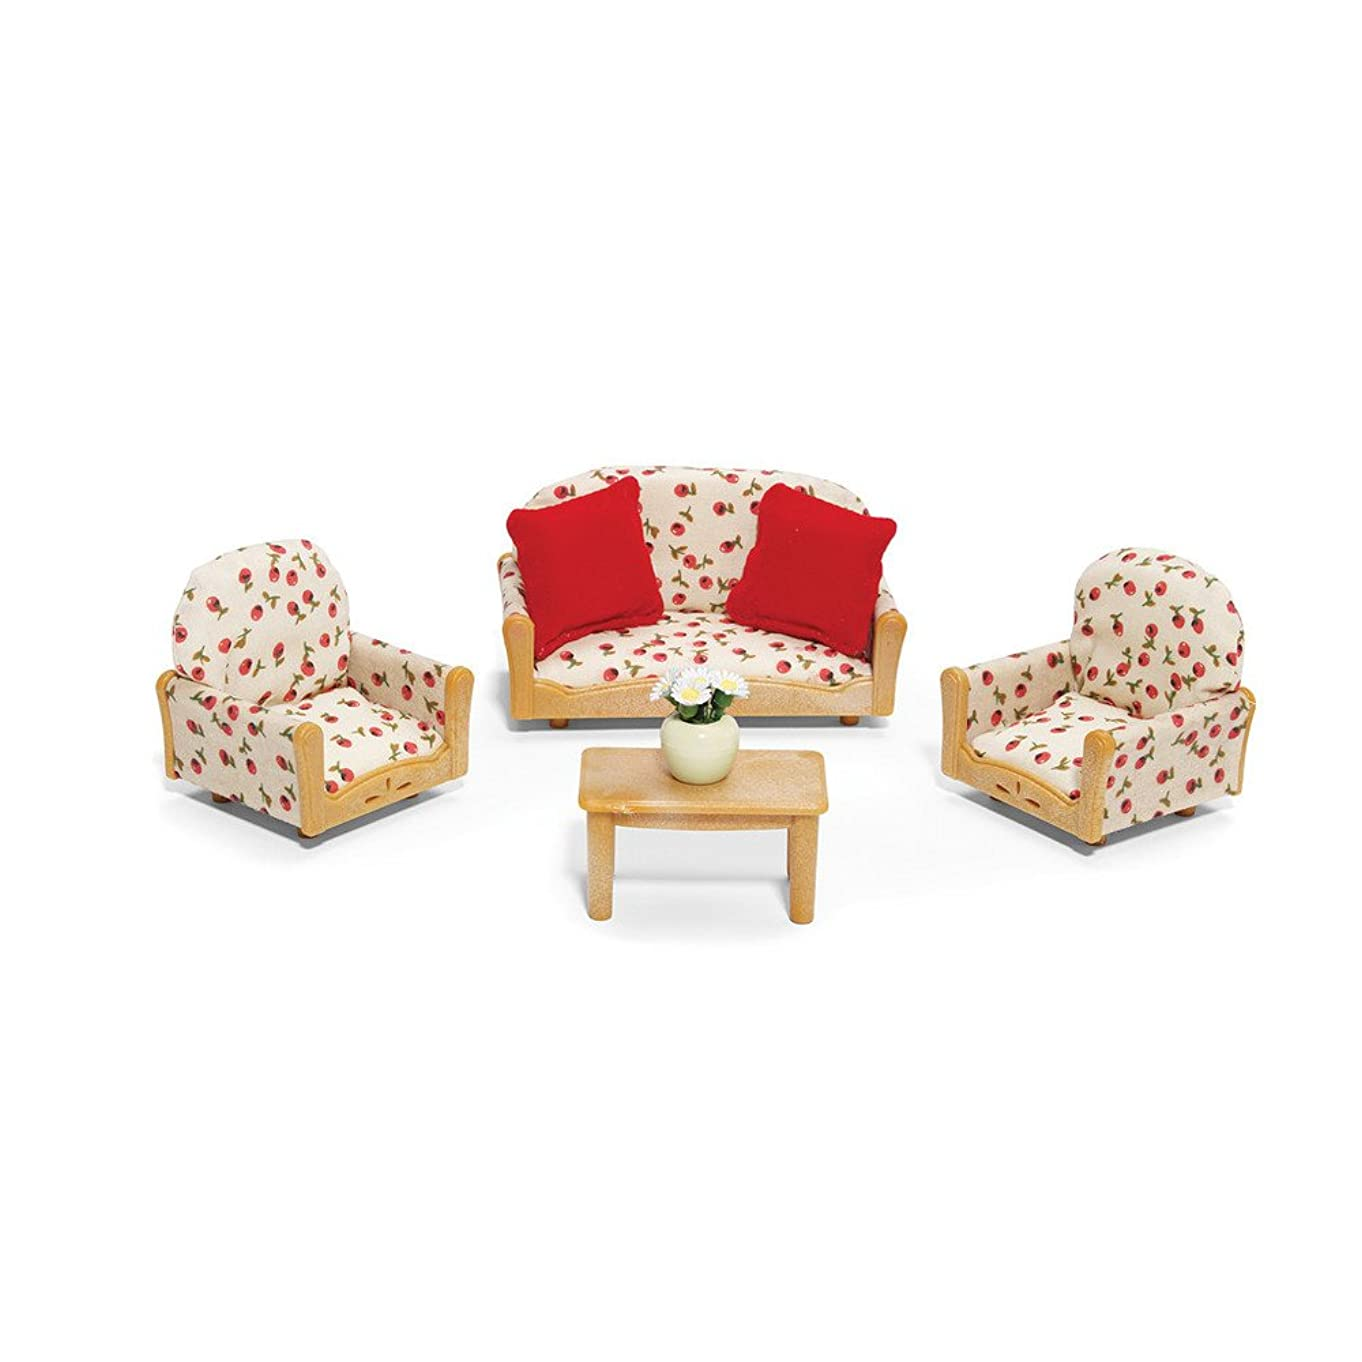 Calico Critters Living Room Suite k39160099